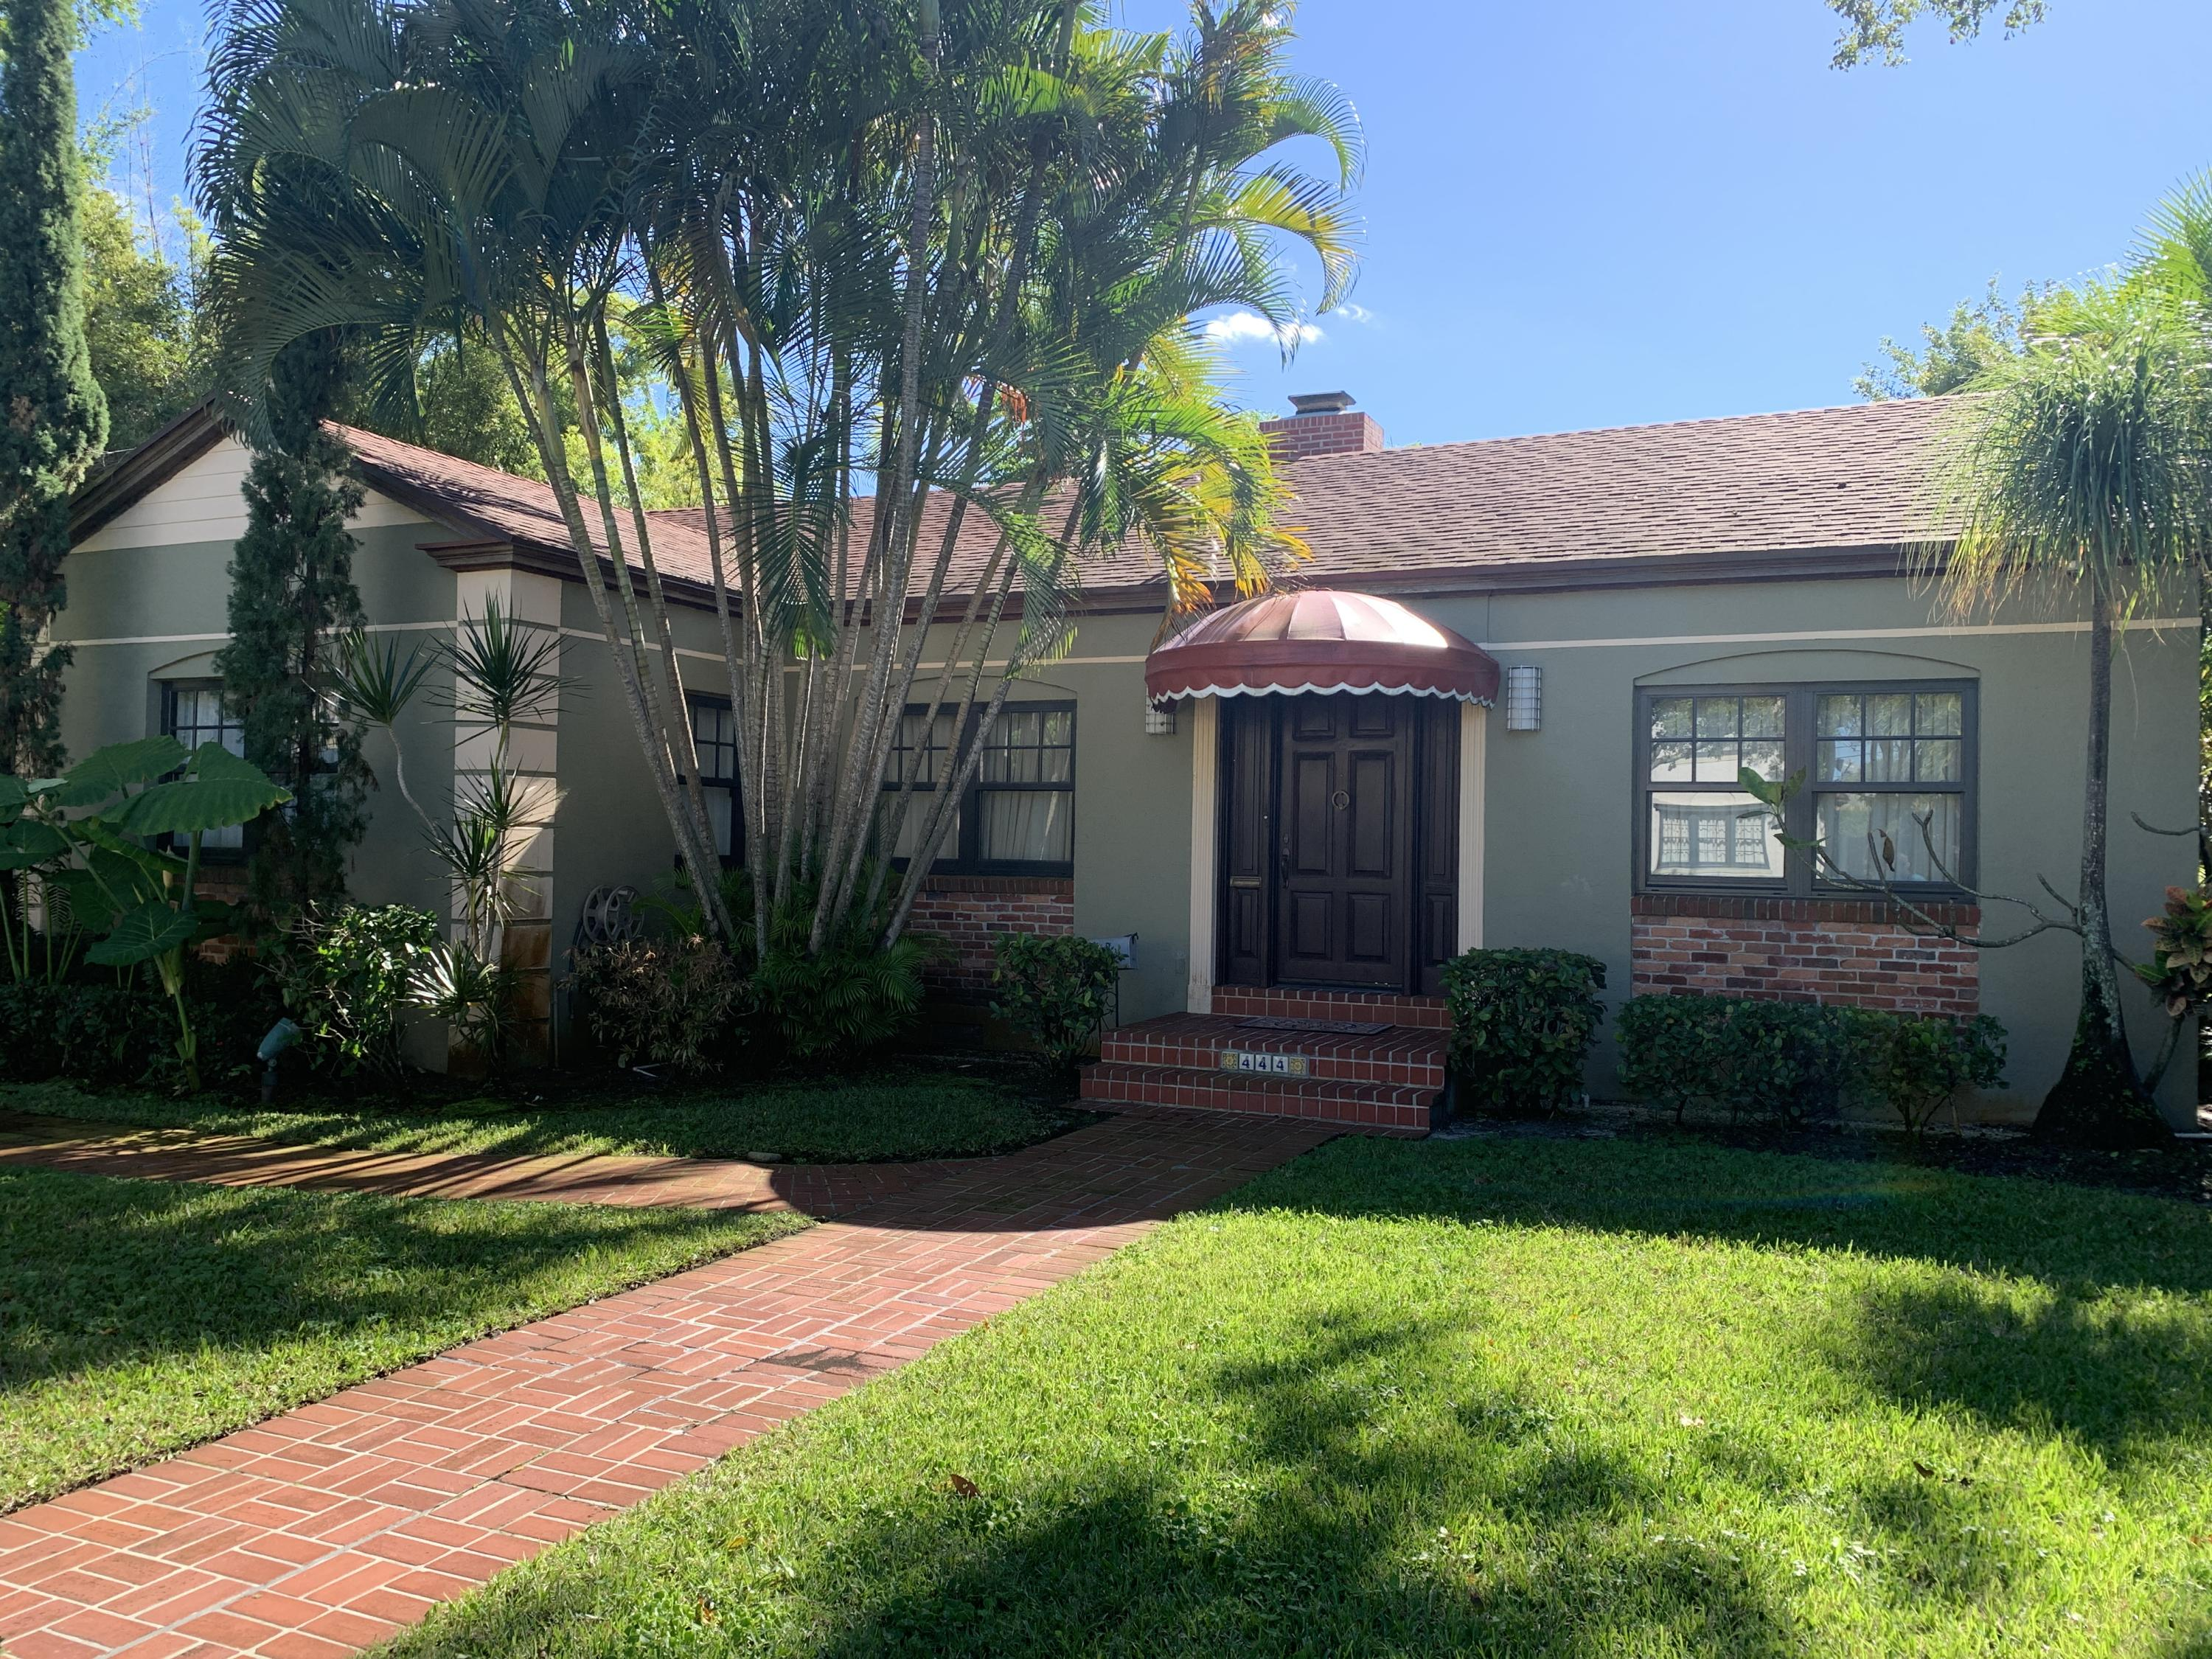 432 30th Street, West Palm Beach, Florida 33407, 1 Bedroom Bedrooms, ,1 BathroomBathrooms,Single Family,For Rent,Old Northwood Historic District,30th,RX-10585572